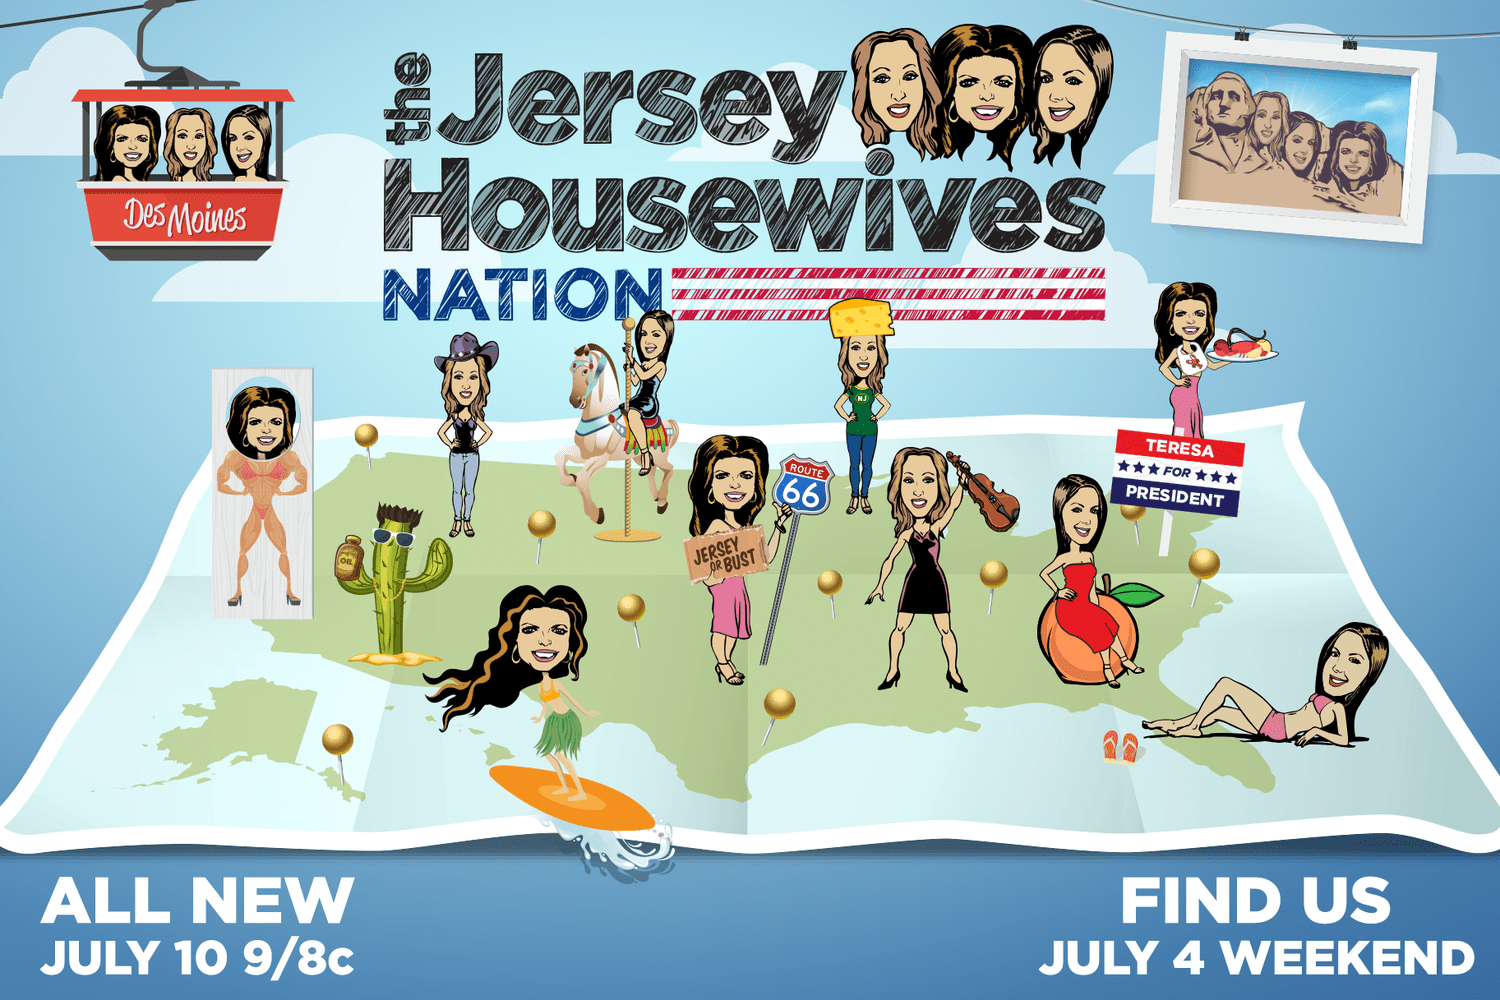 Jersey Housewives Nation